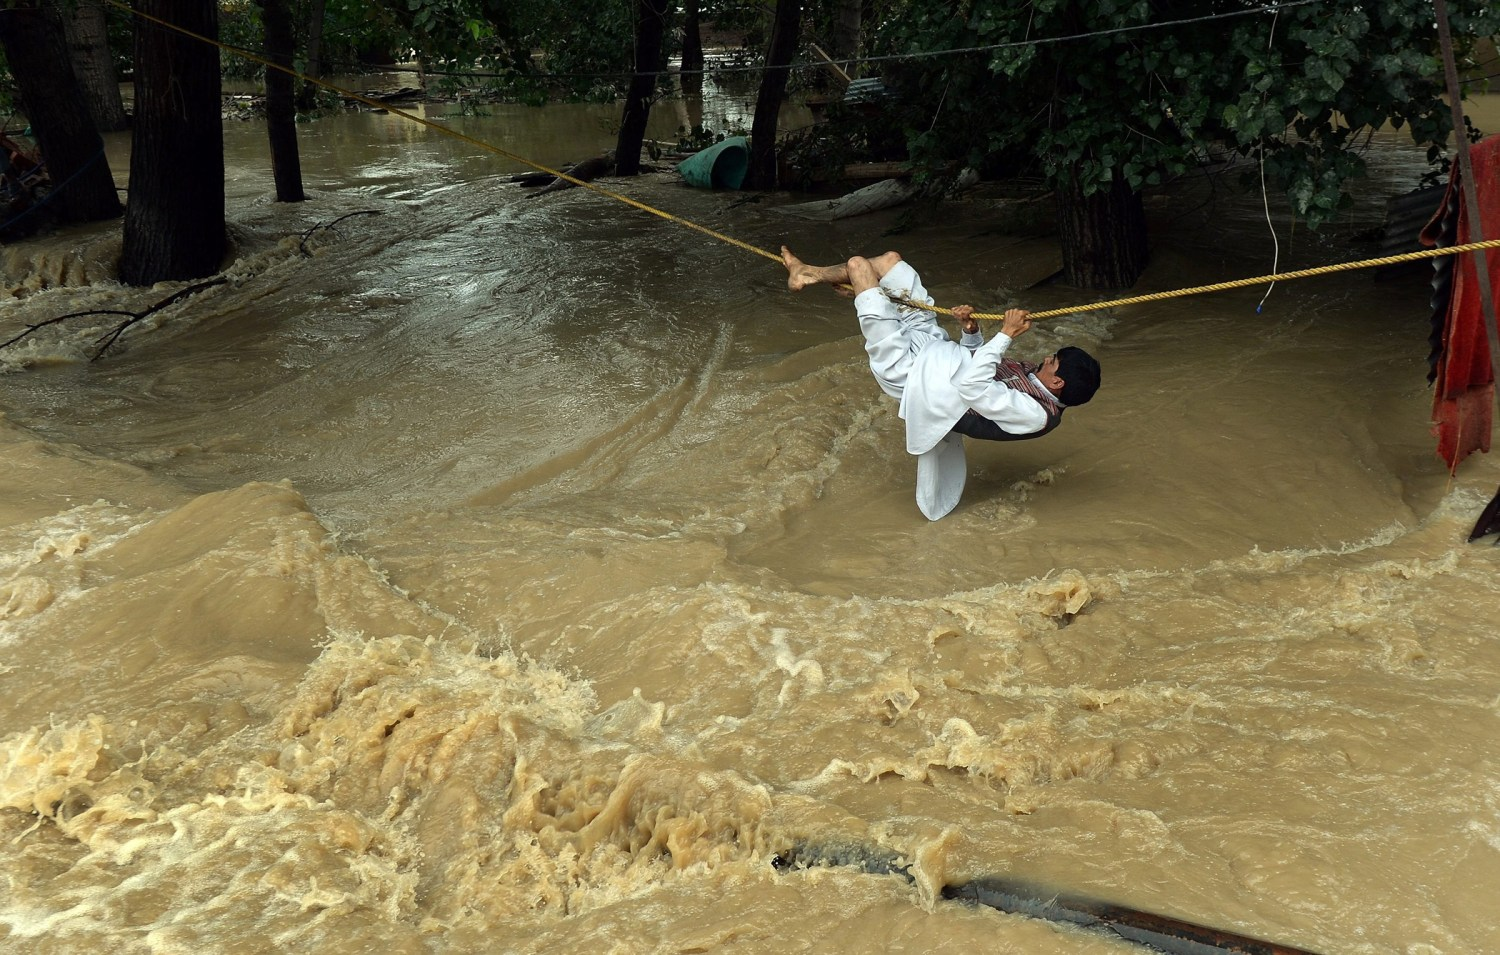 See Dramatic Rescue Scenes from Floods That Killed Over 400 in Pakistan and India | Time